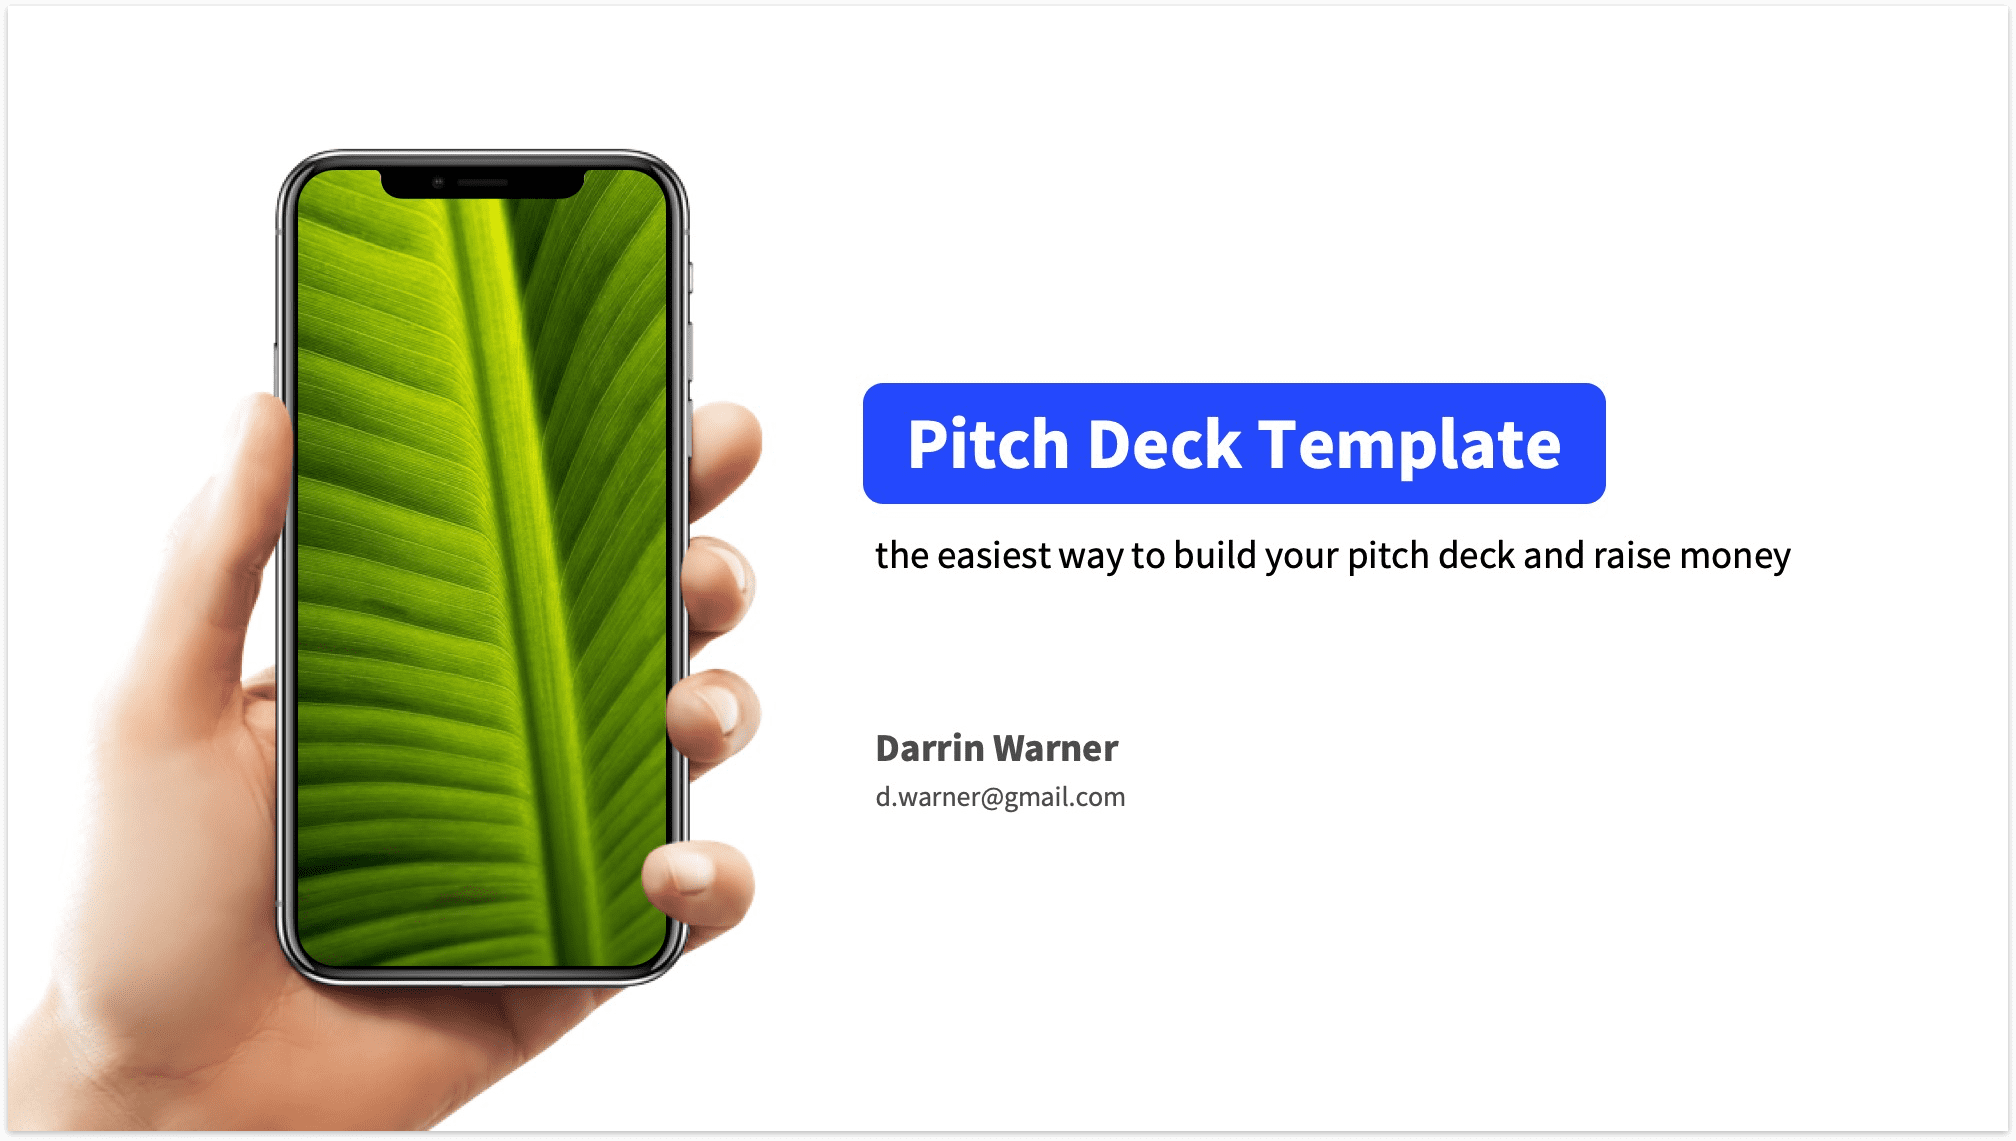 Pitch deck title slide example including product and title